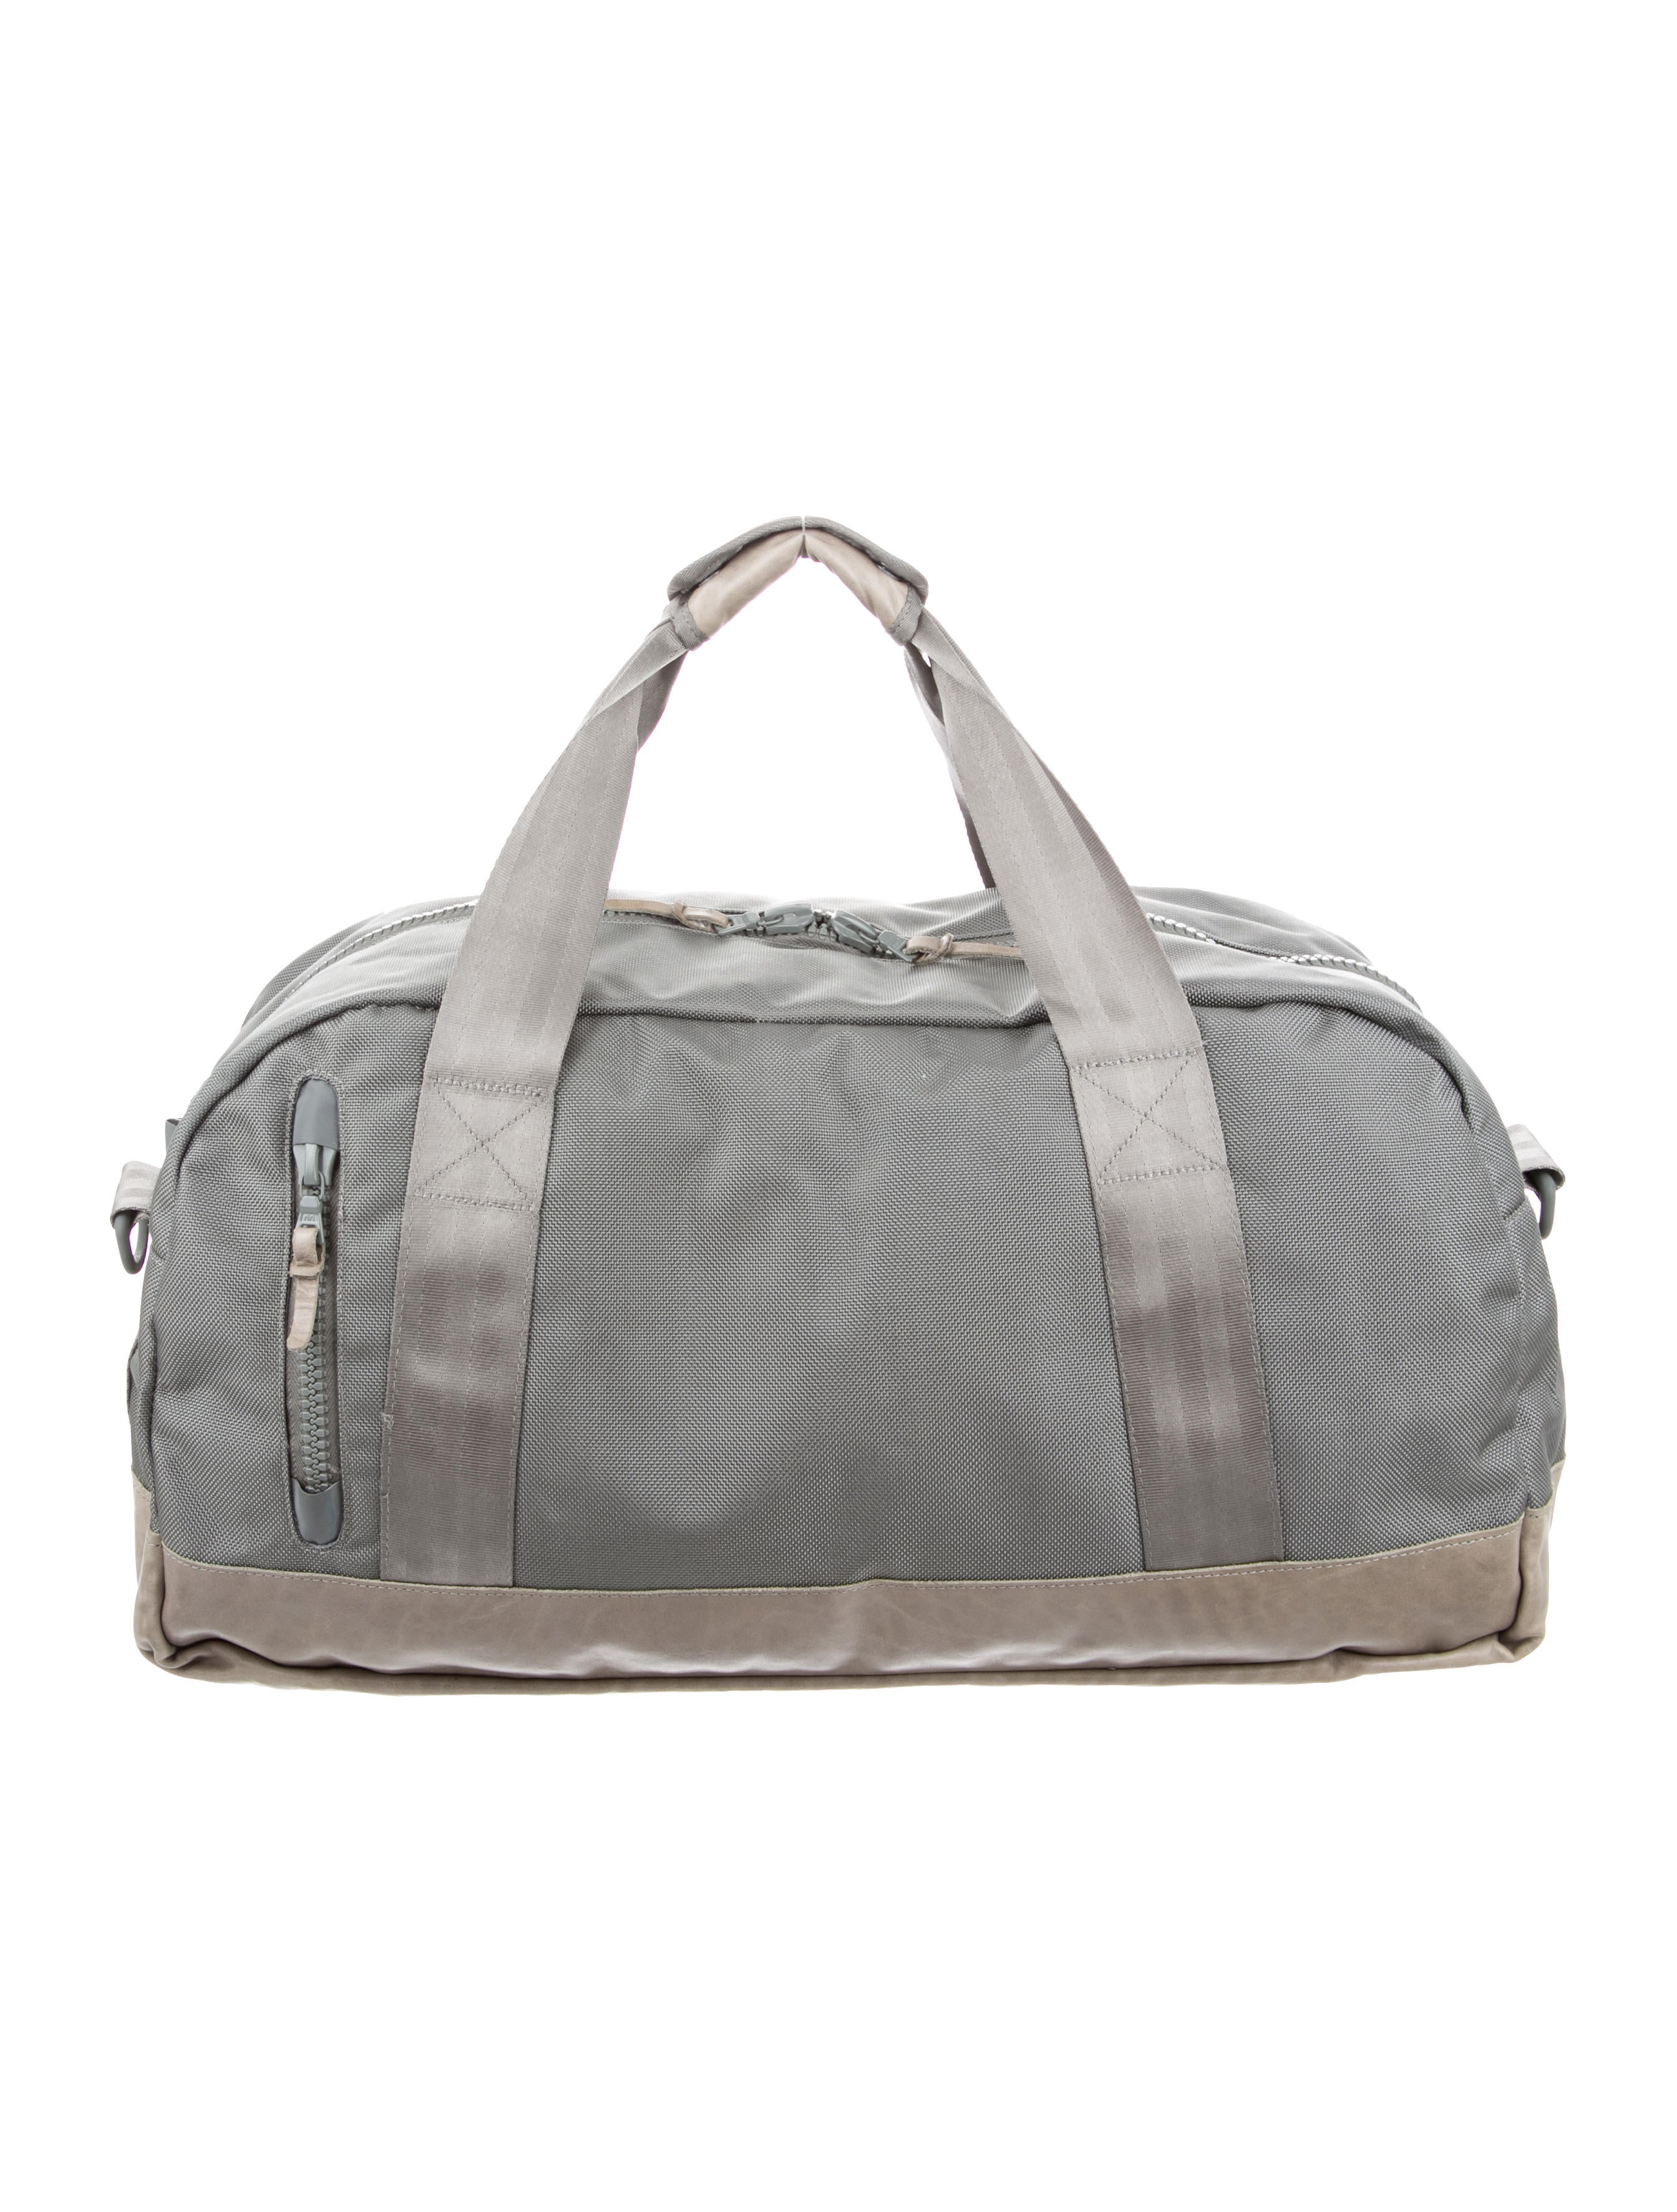 Visvim Leather Trimmed Duffle Bag Bags VSM